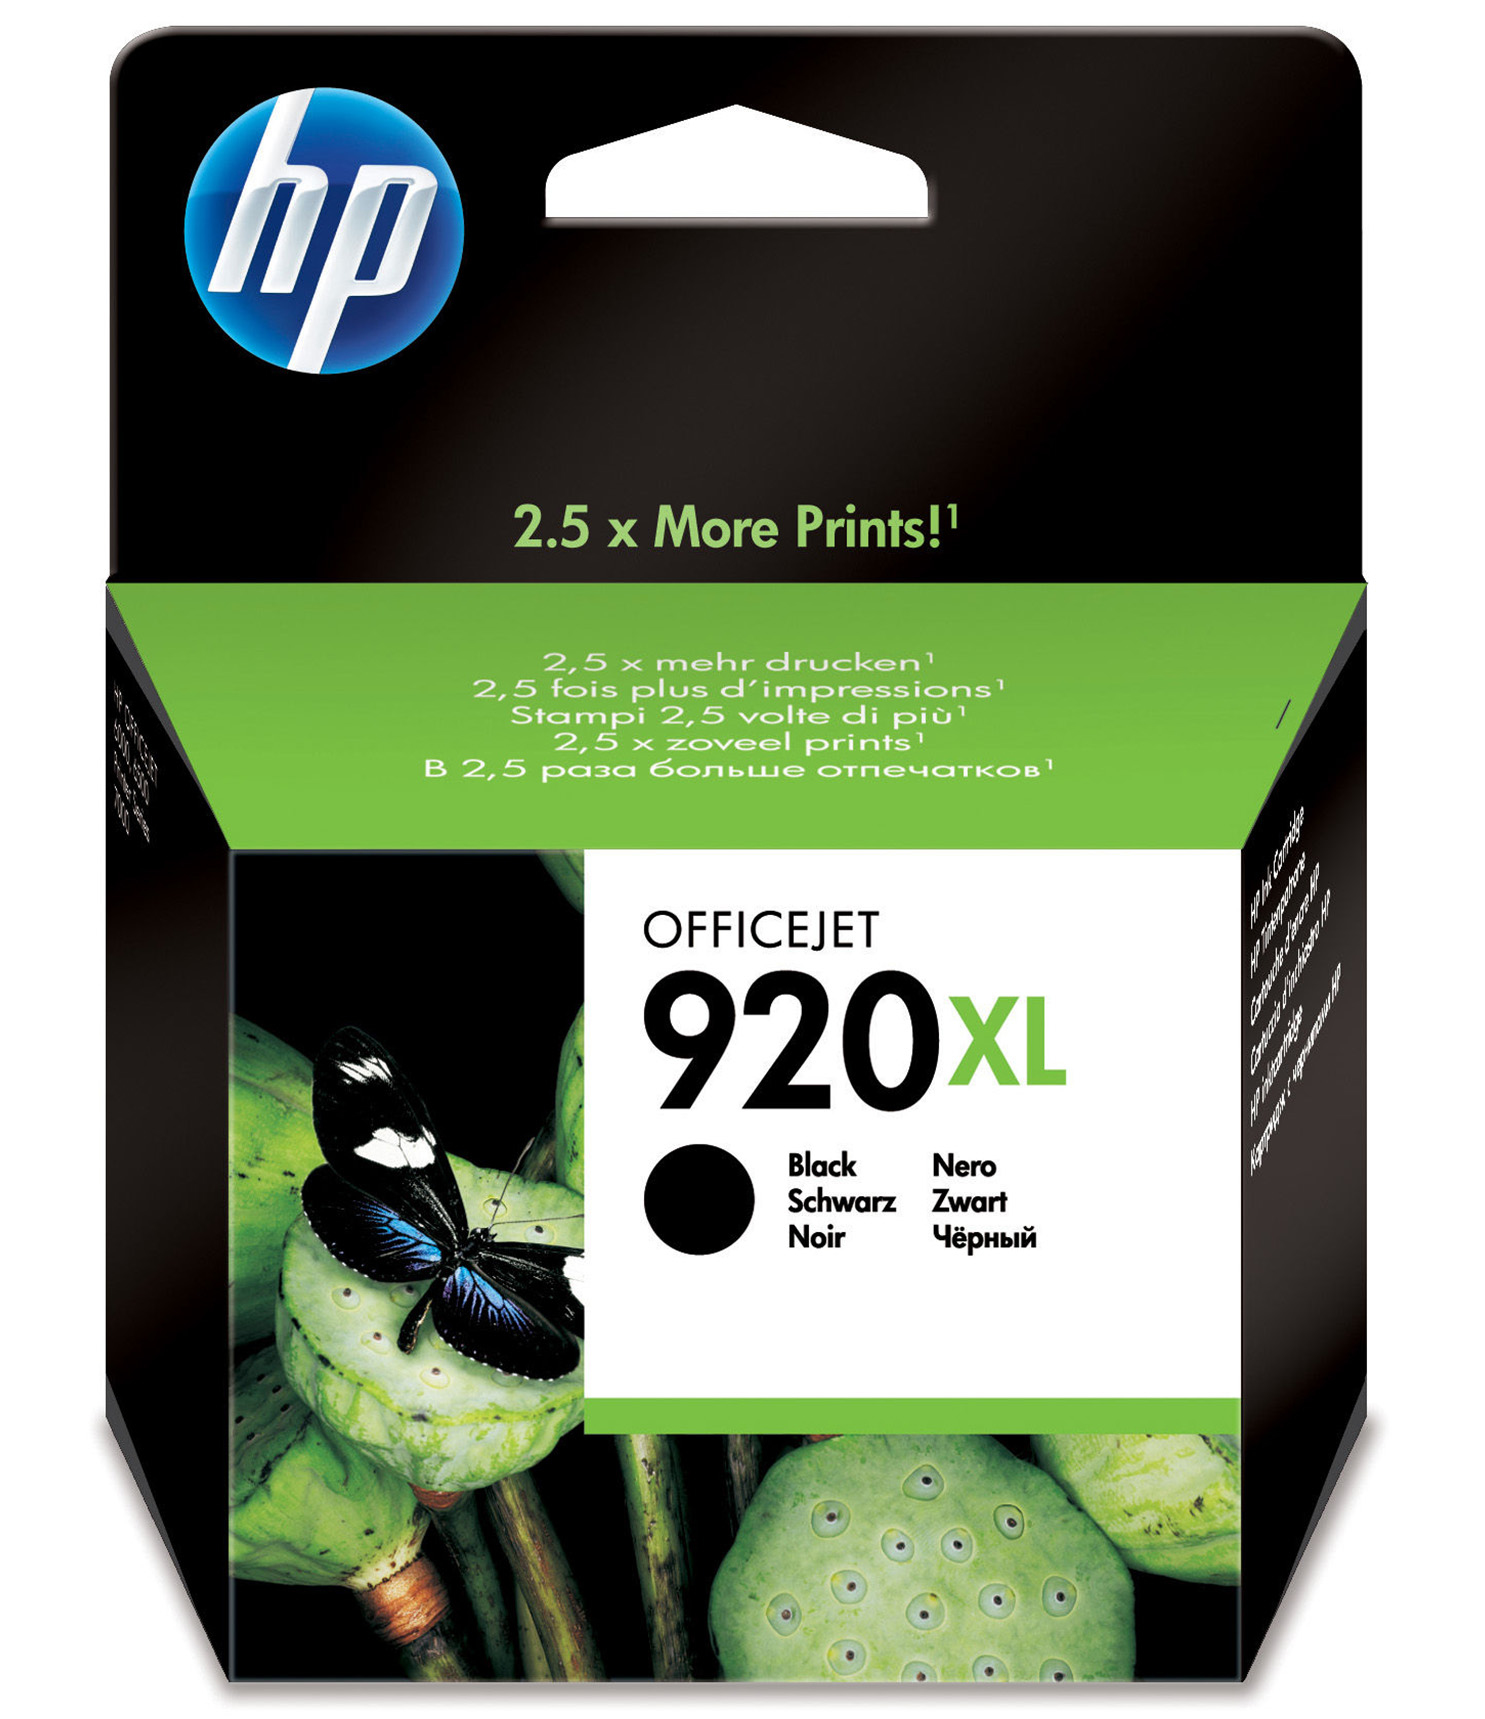 Compatible HP CD975AE (920XL) Black Ink Cartridge CD975AE - rem01